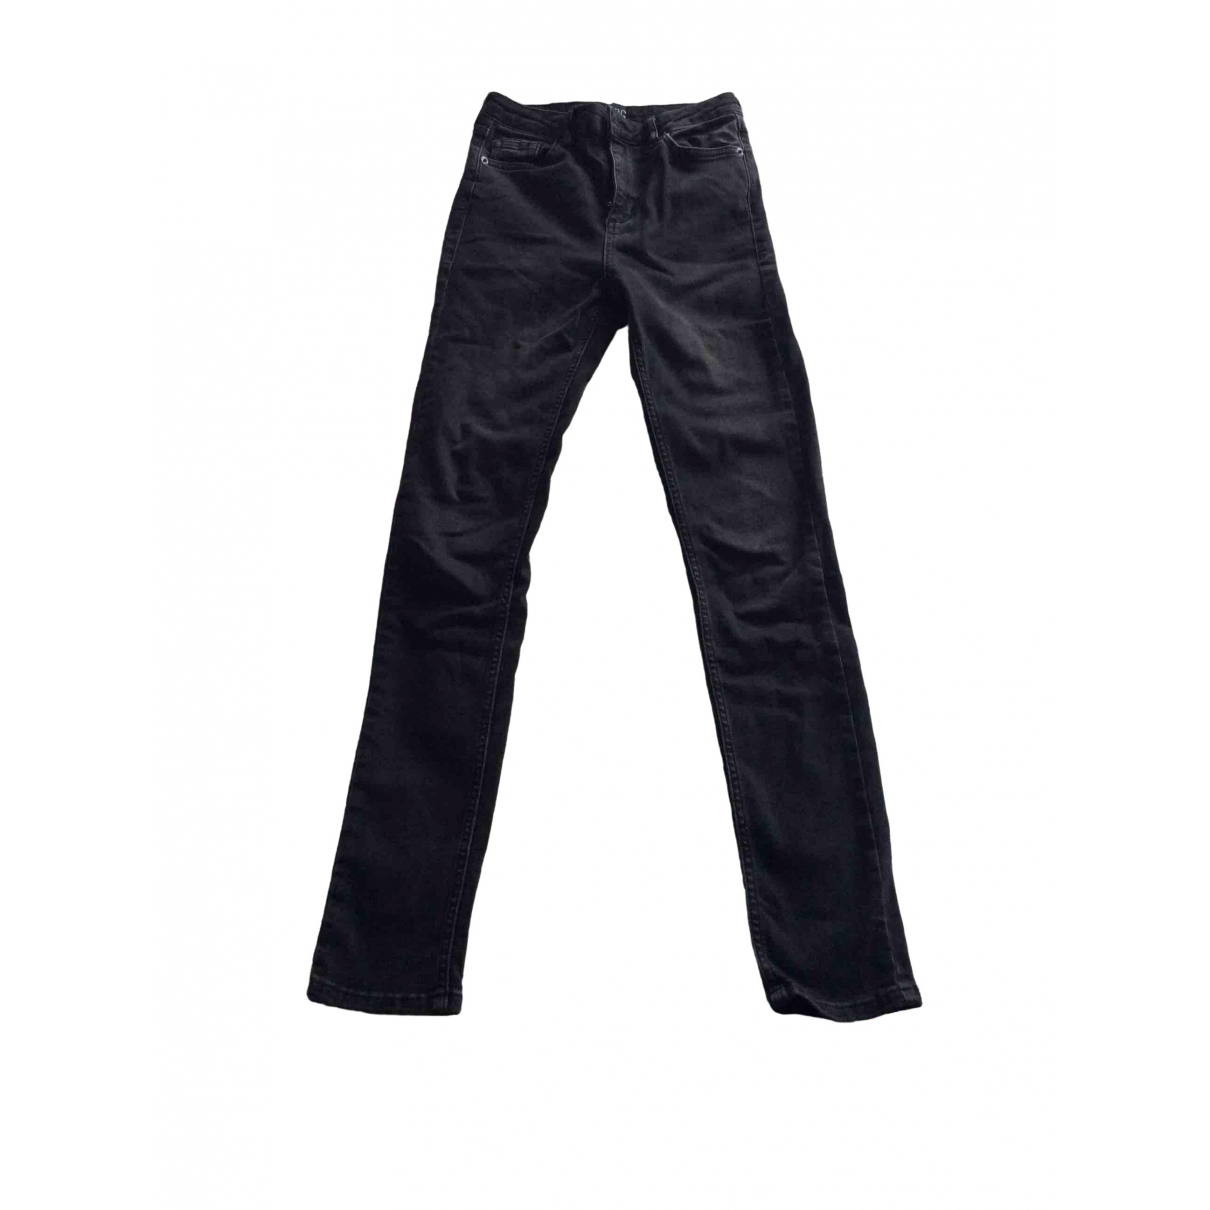 Urban Outfitters \N Black Cotton Jeans for Women 36 FR